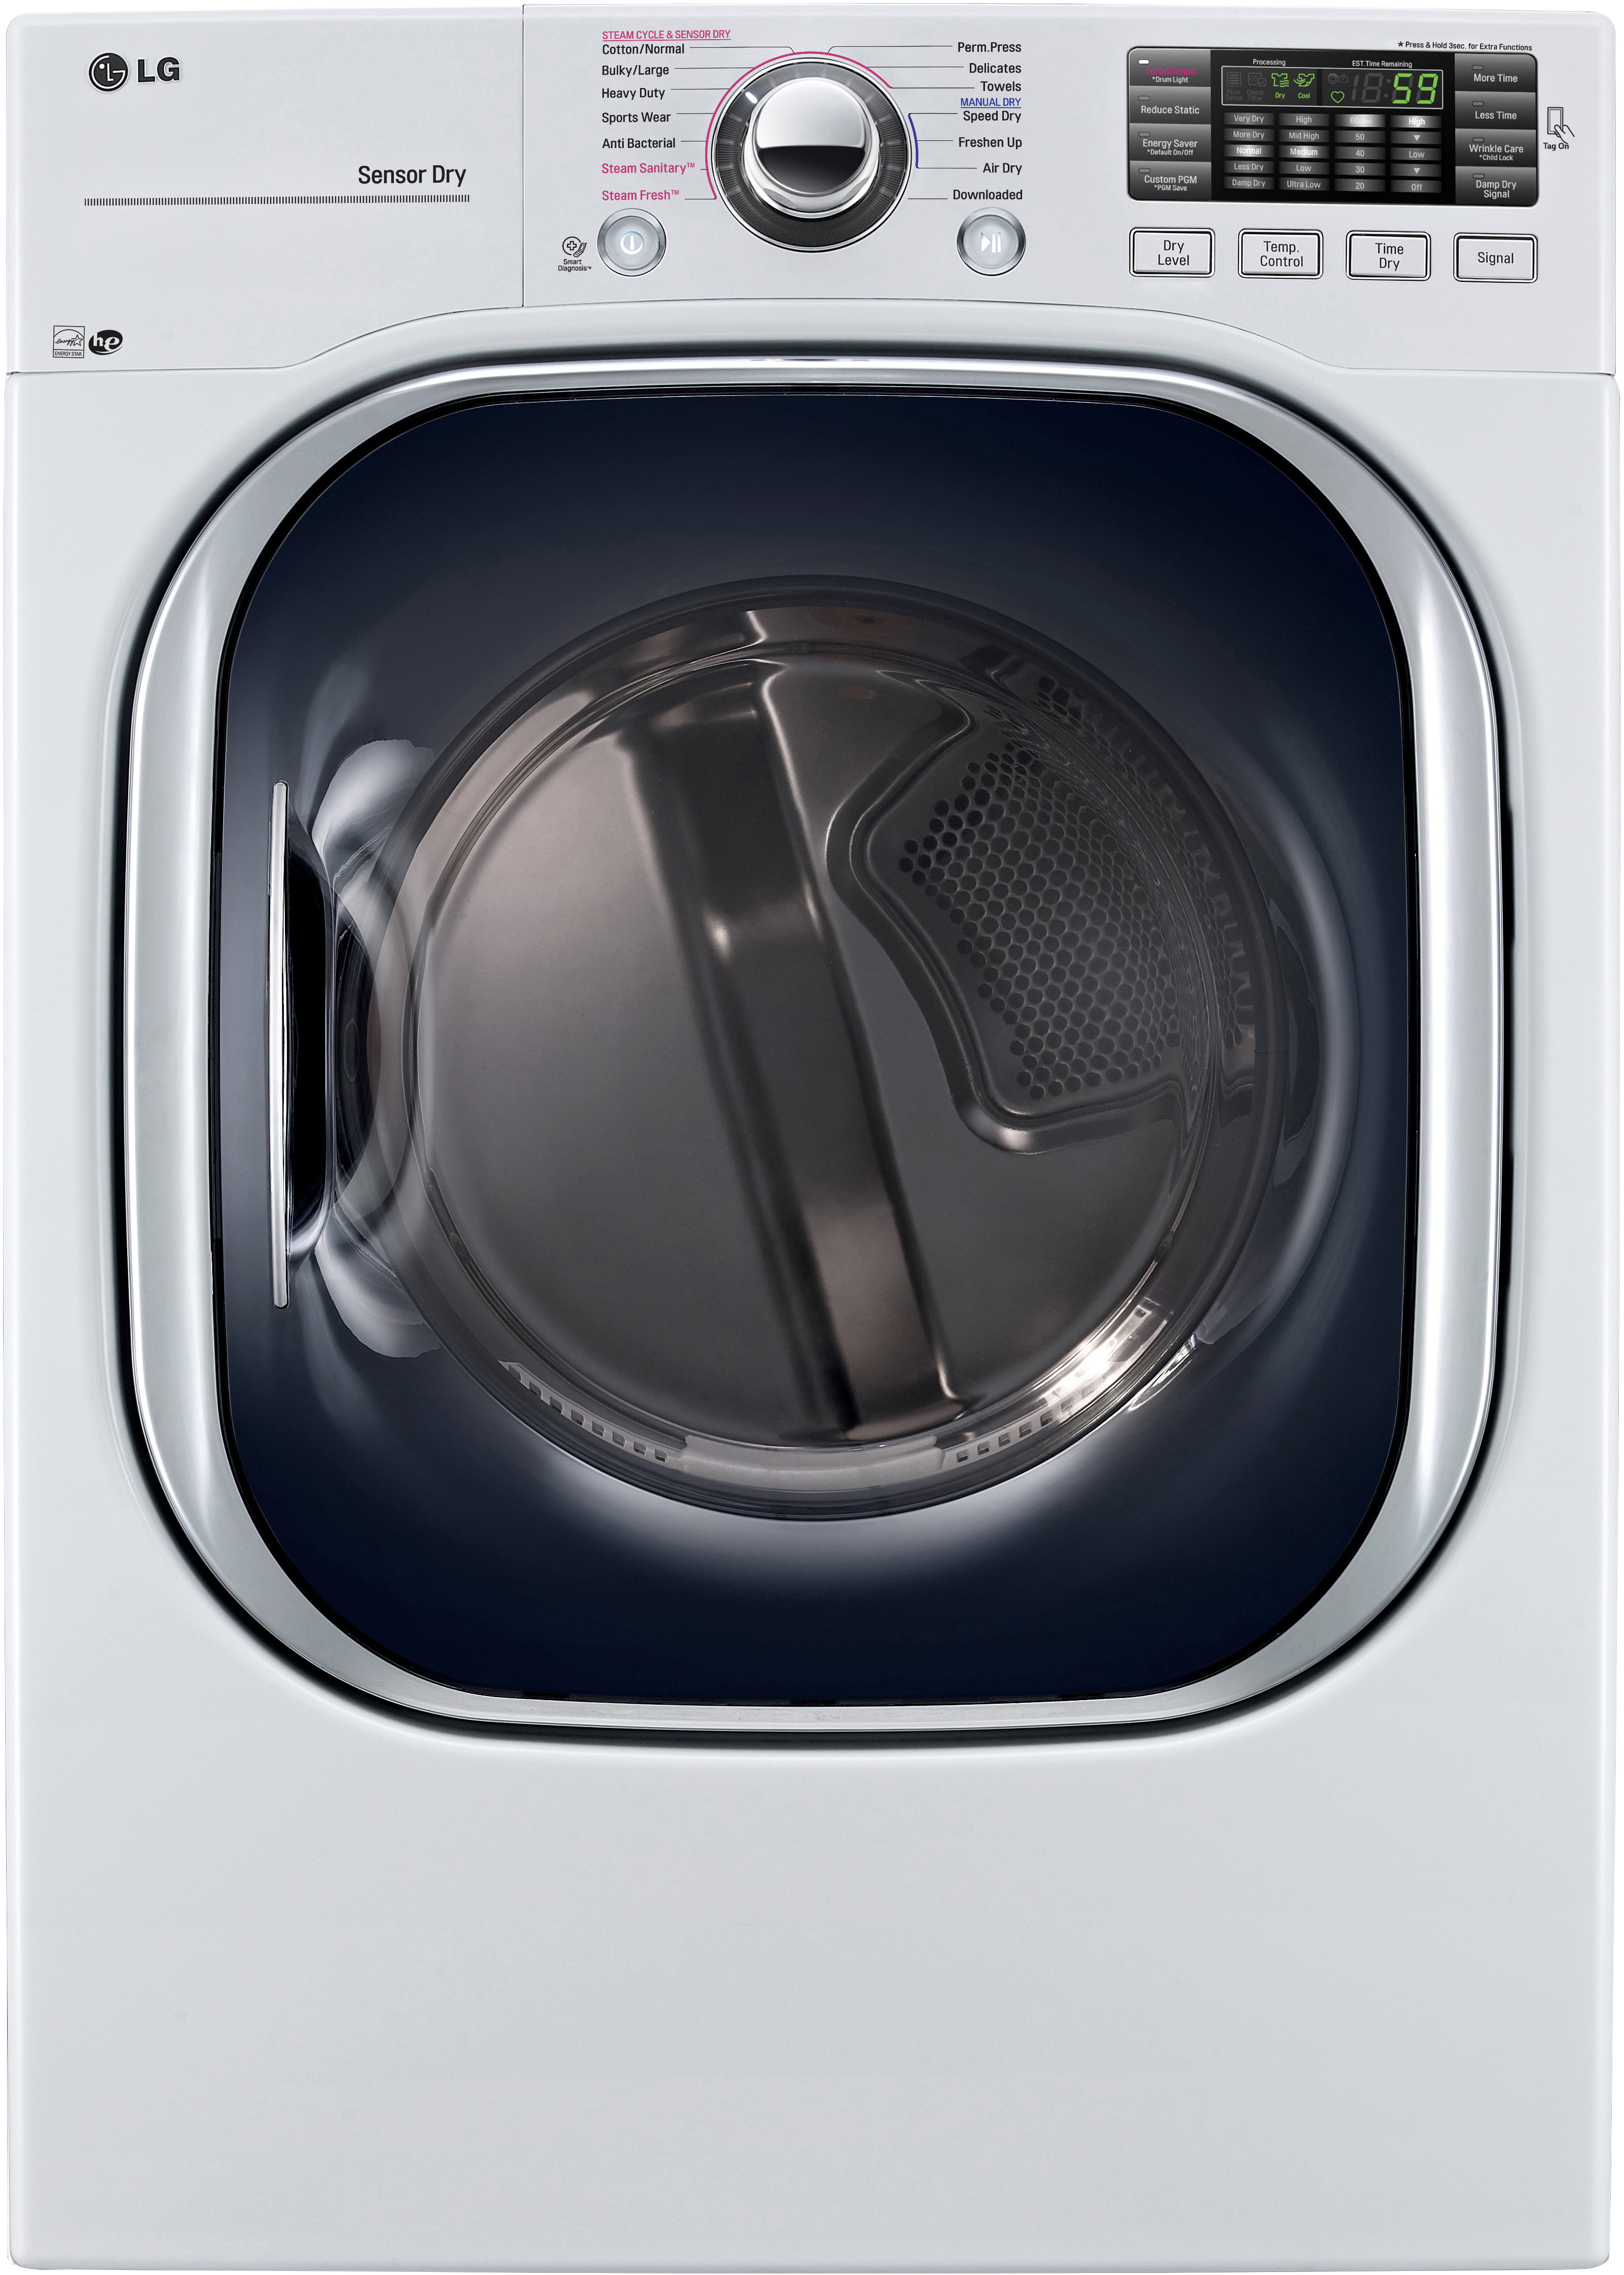 Lg 2 3 cu ft all in one washer and dryer - Lg 2 3 Cu Ft All In One Washer And Dryer 20